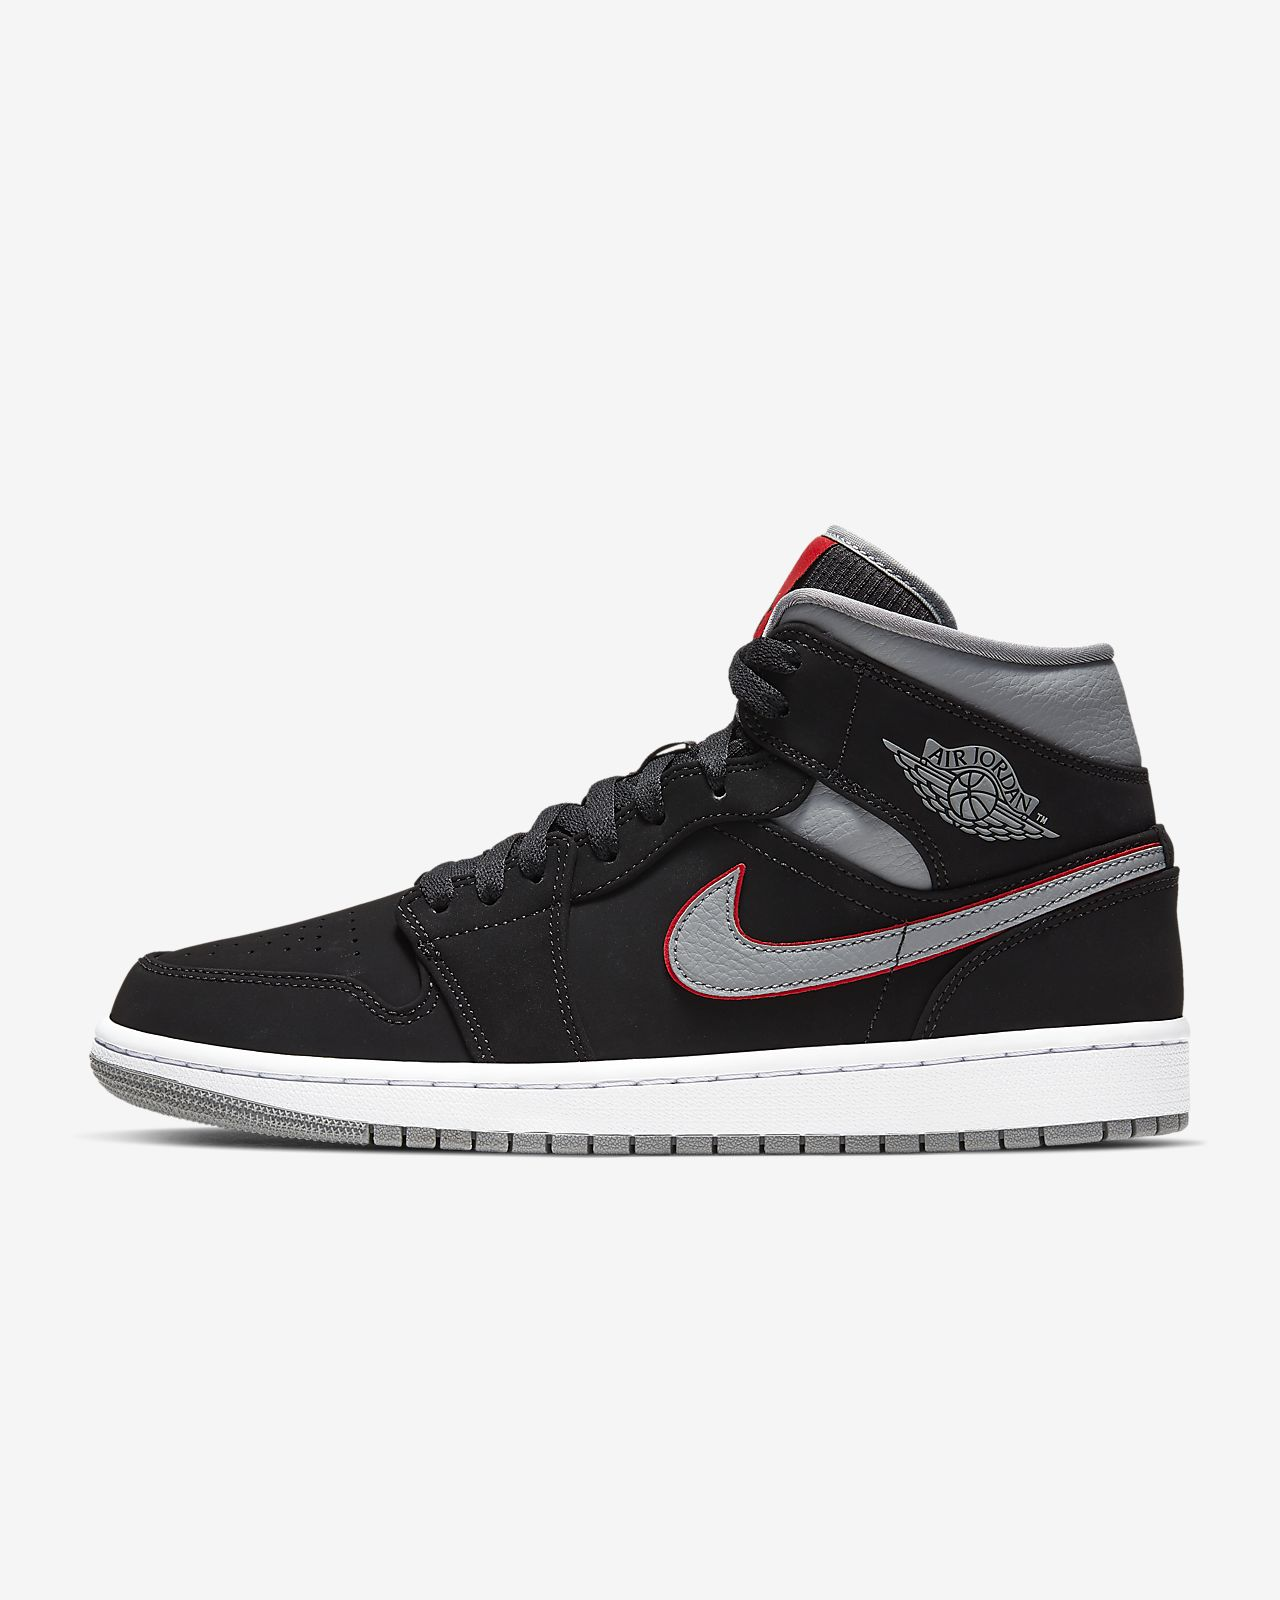 6f27db021388 Air Jordan 1 Mid Men s Shoe. Nike.com GB